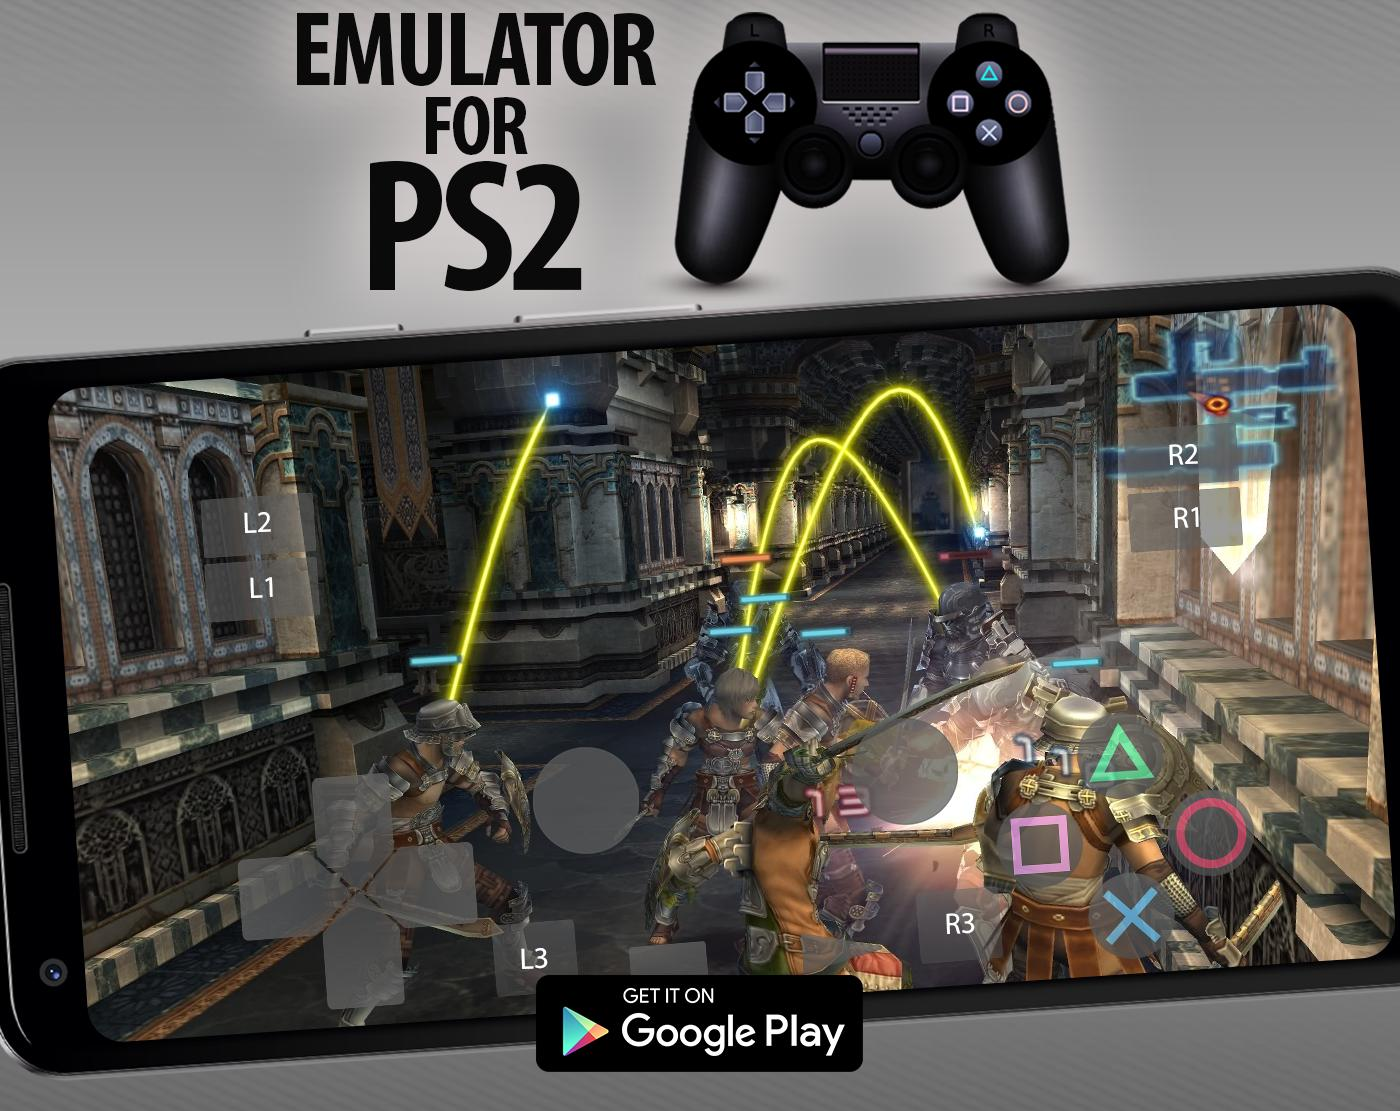 PRO PS2 Emulator - Free Emulator For PS2 for Android - APK